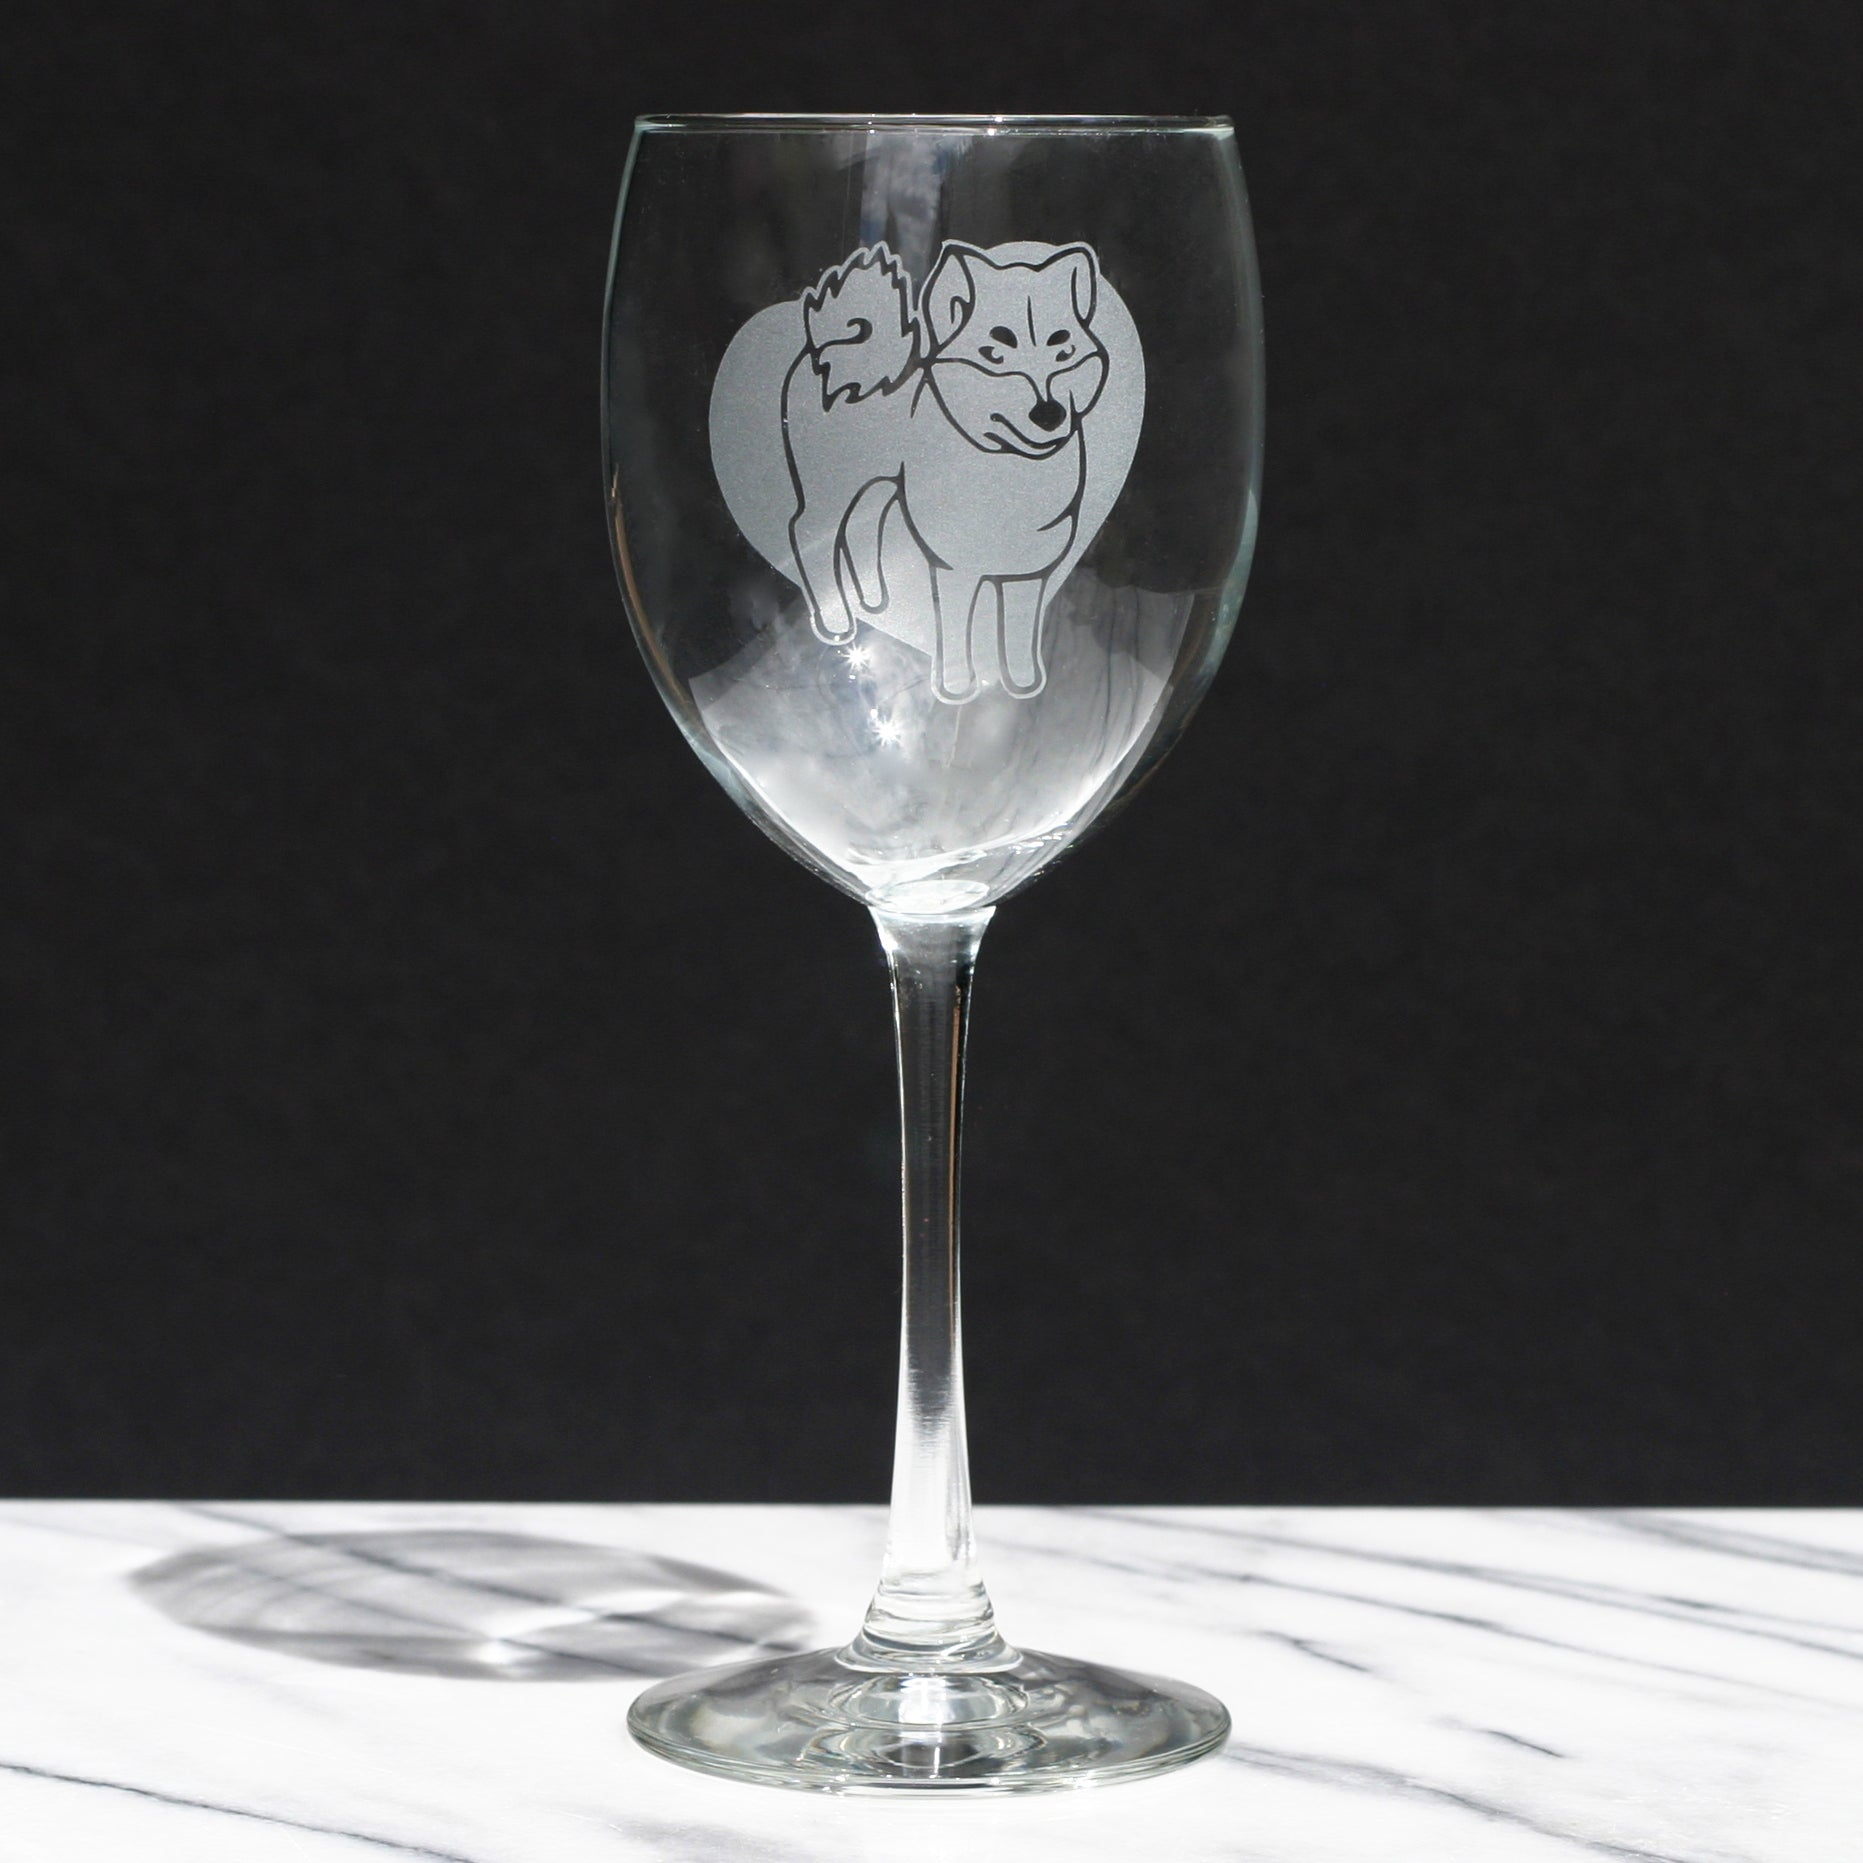 Akita Inu wine glass by Bread and Badger